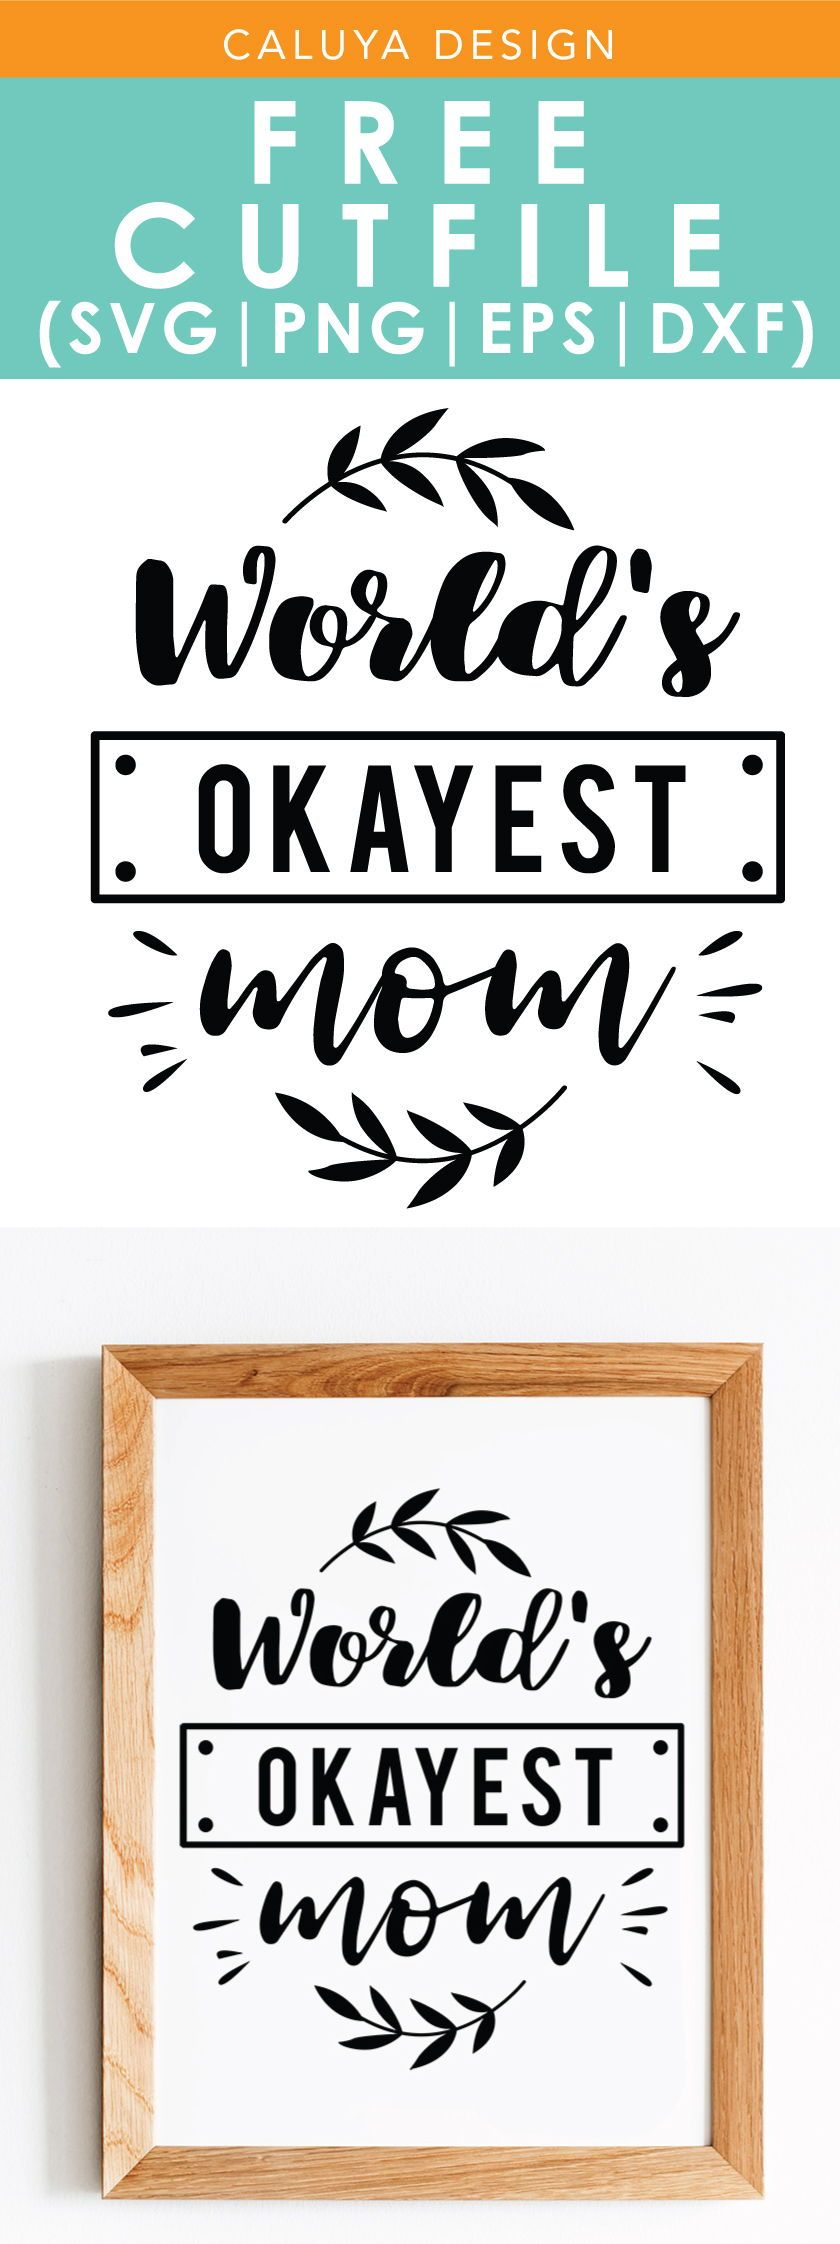 World S Okayest Mom Svg Png Eps Dxf By Caluya Design Okayest Mom How To Make Planner Free Printable Clip Art